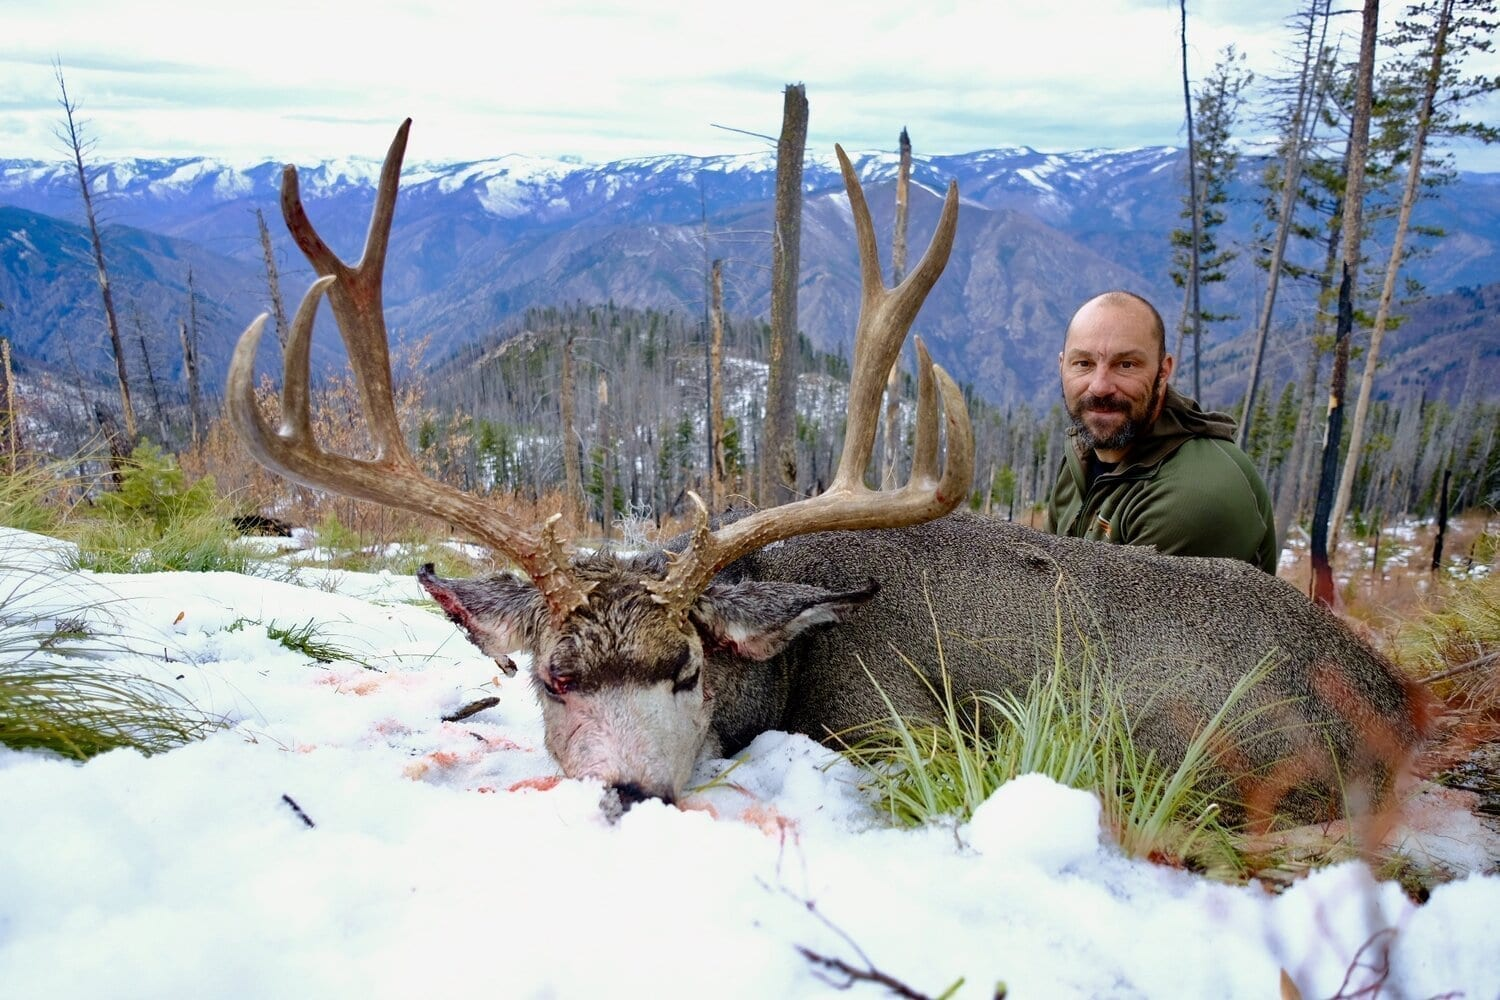 Idaho Wilderness Horseback Elk & Mule Deer Hunts with Wilderness Mule Outfitting